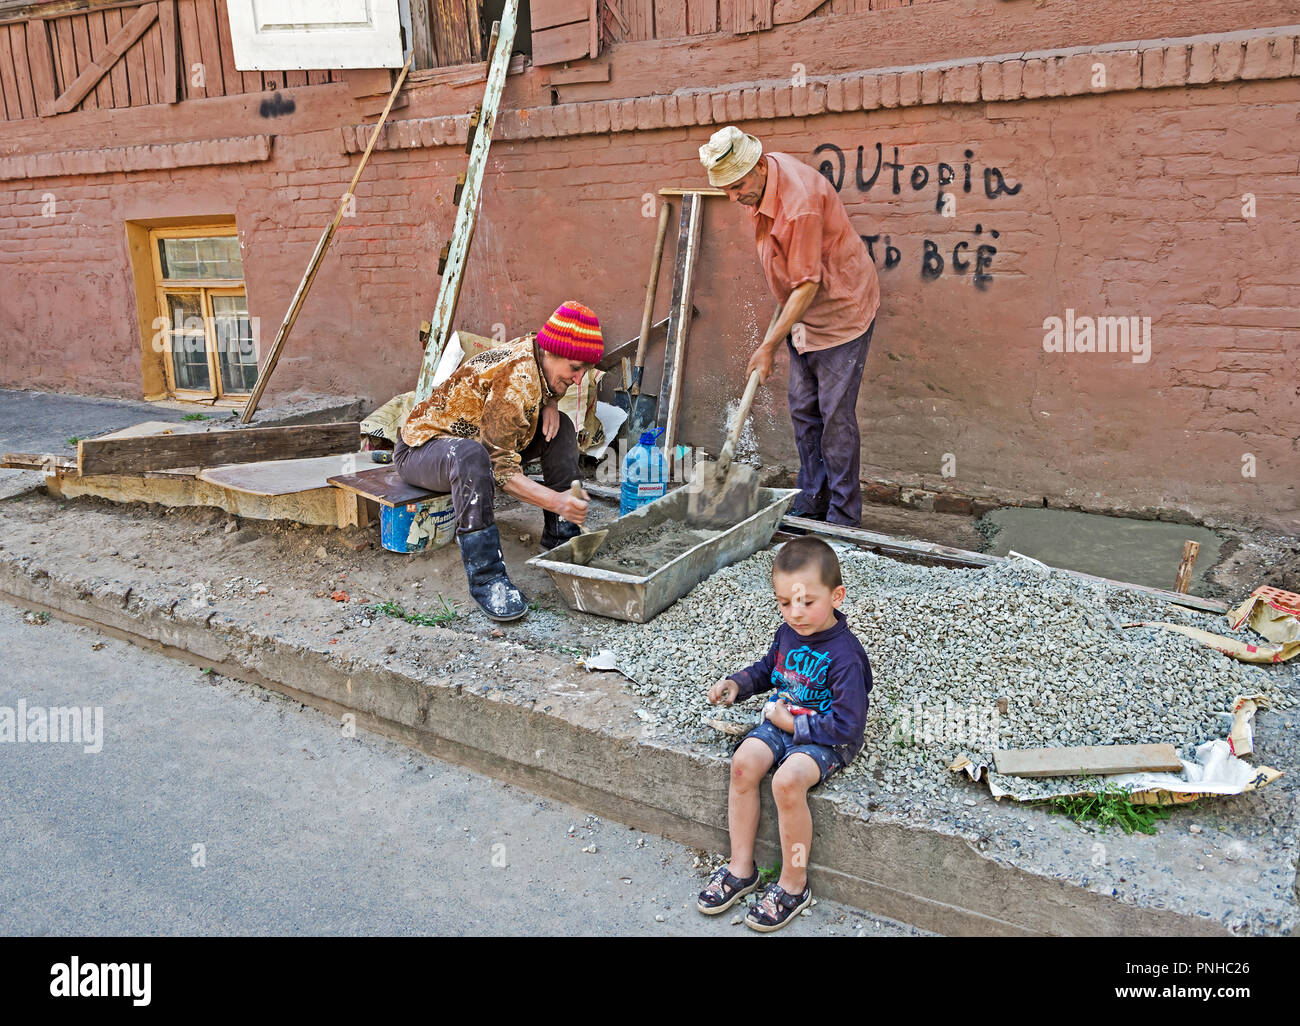 Dnipro, Ukraine - May 05, 2018: Grandfather, grandmother and grandson repair their dilapidated housing on their own Stock Photo